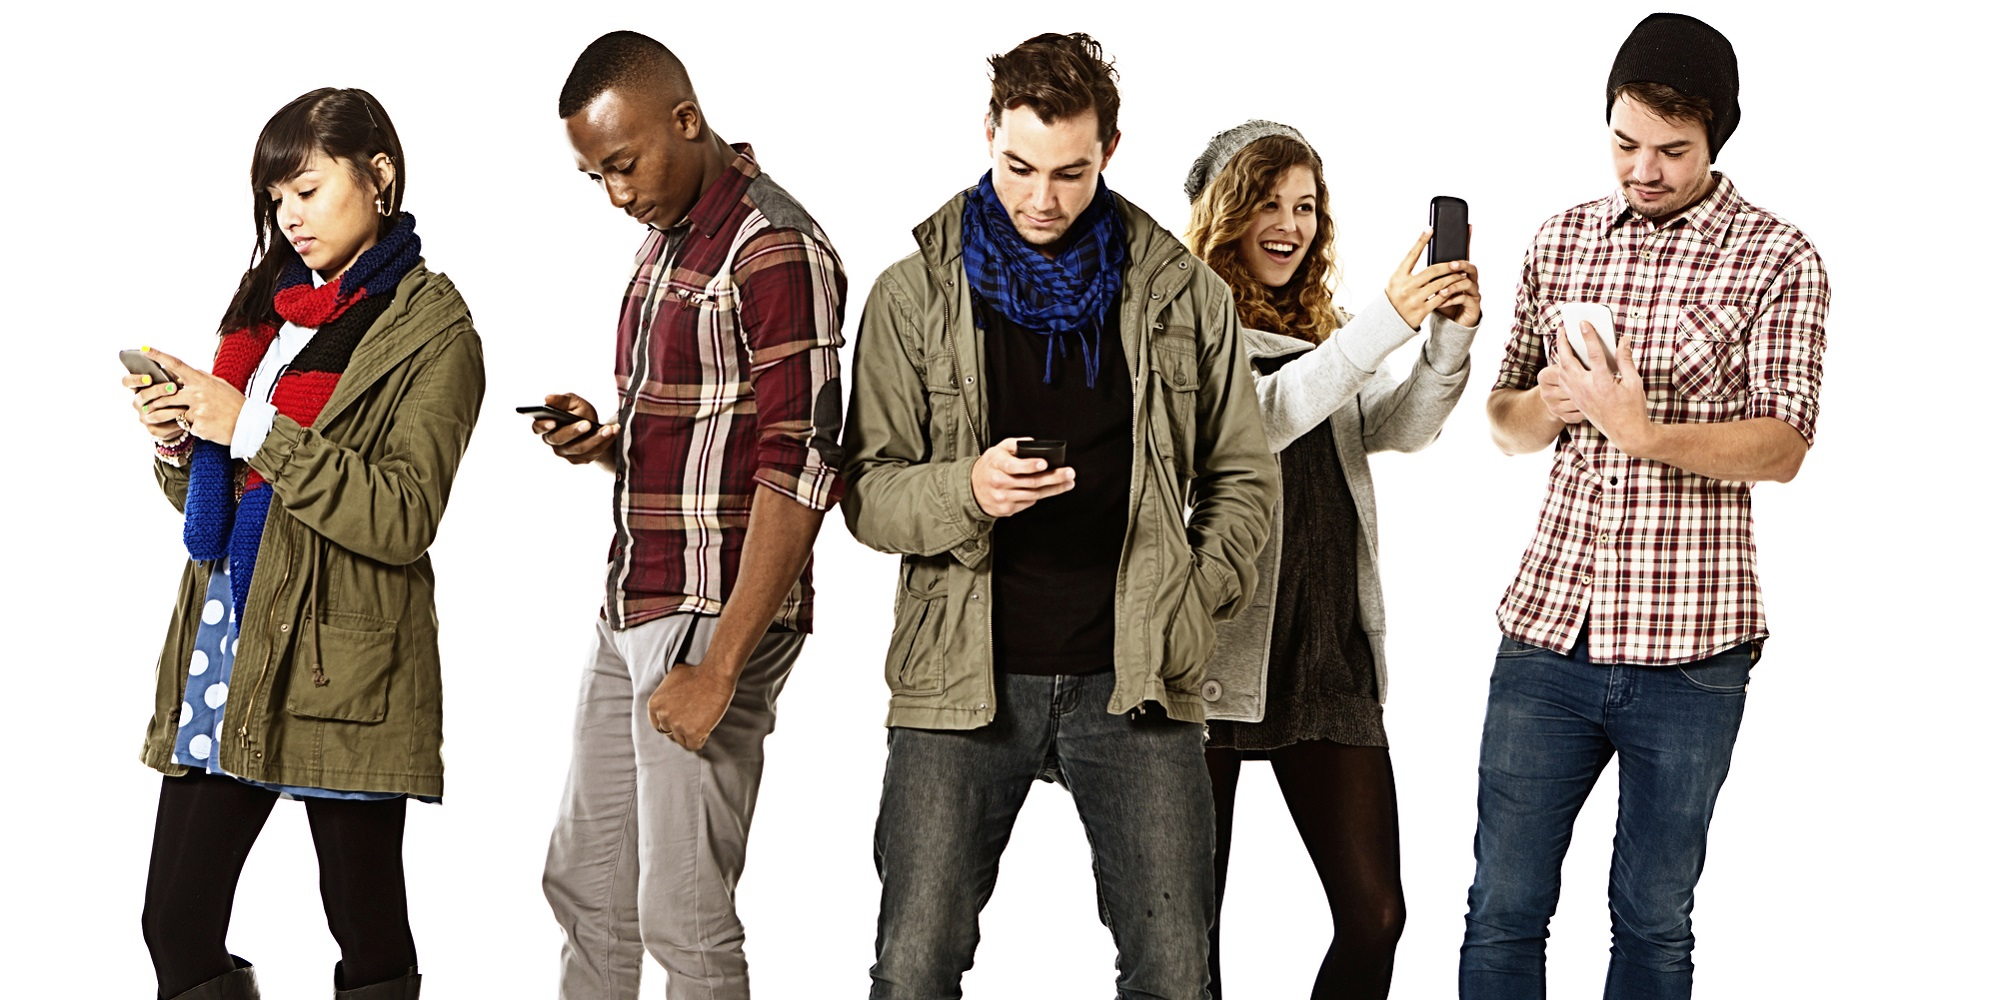 Five young people keep in touch by ignoring each other!